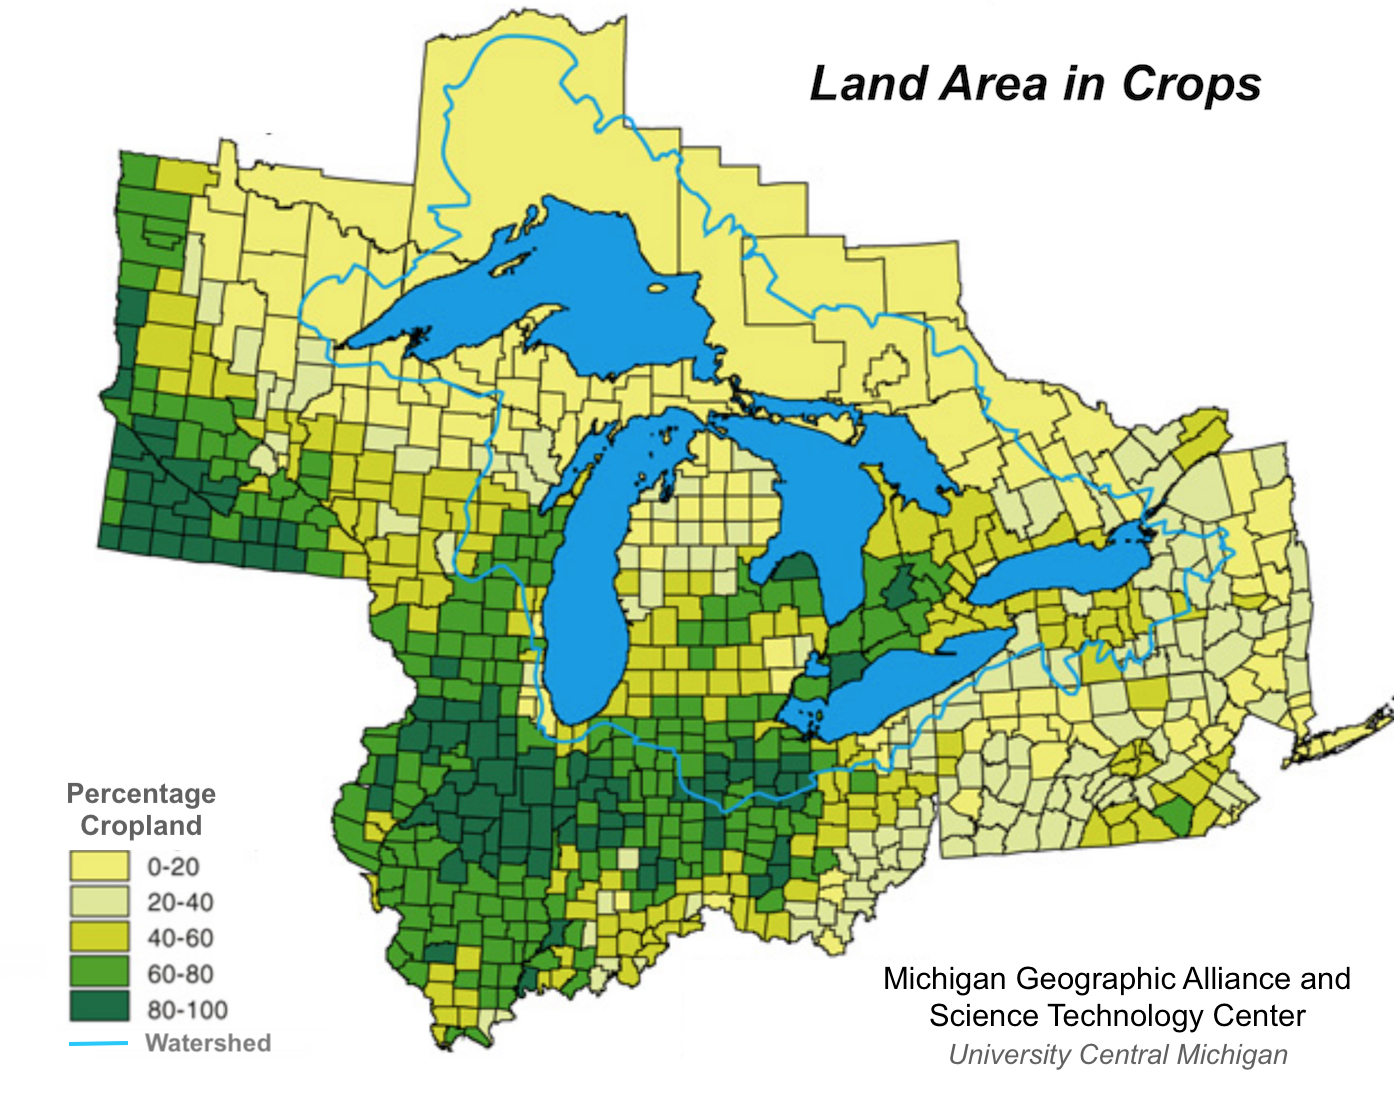 an official department of agriculture map shows that the percentage of area used for crop production is low in the areas of the nephite lands around the